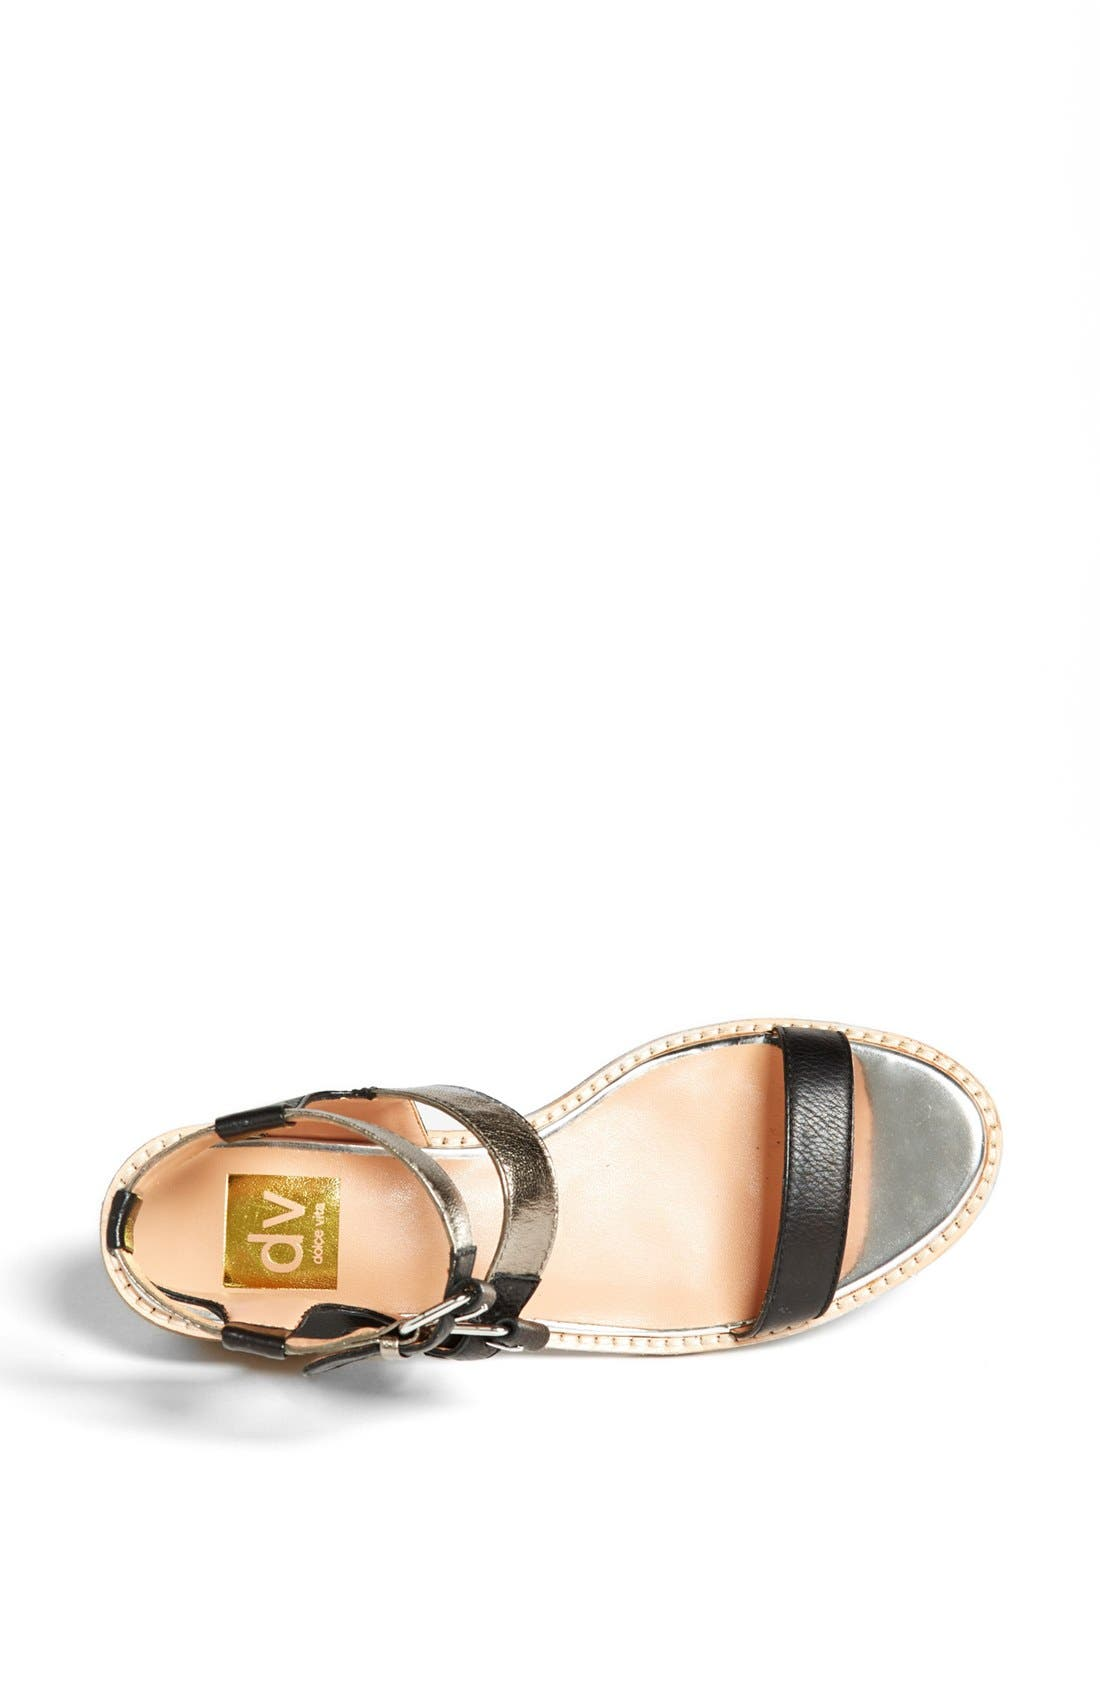 DV BY DOLCE VITA, 'Zinc' Sandal, Alternate thumbnail 3, color, 001